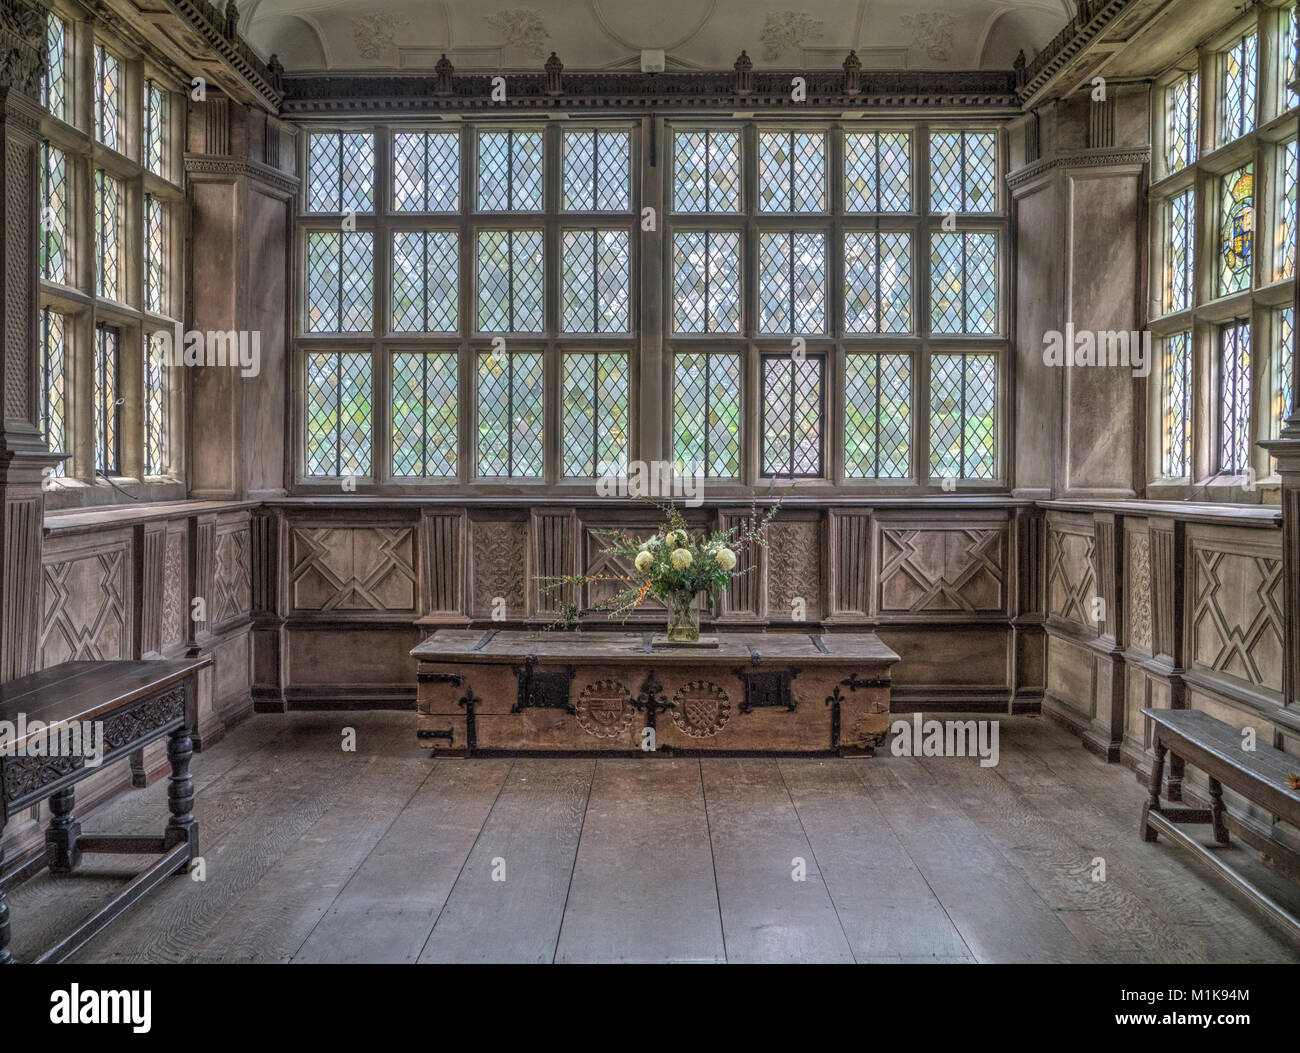 The Interior Of The Long Gallery, Built In The 16th Century, At Haddon Hall